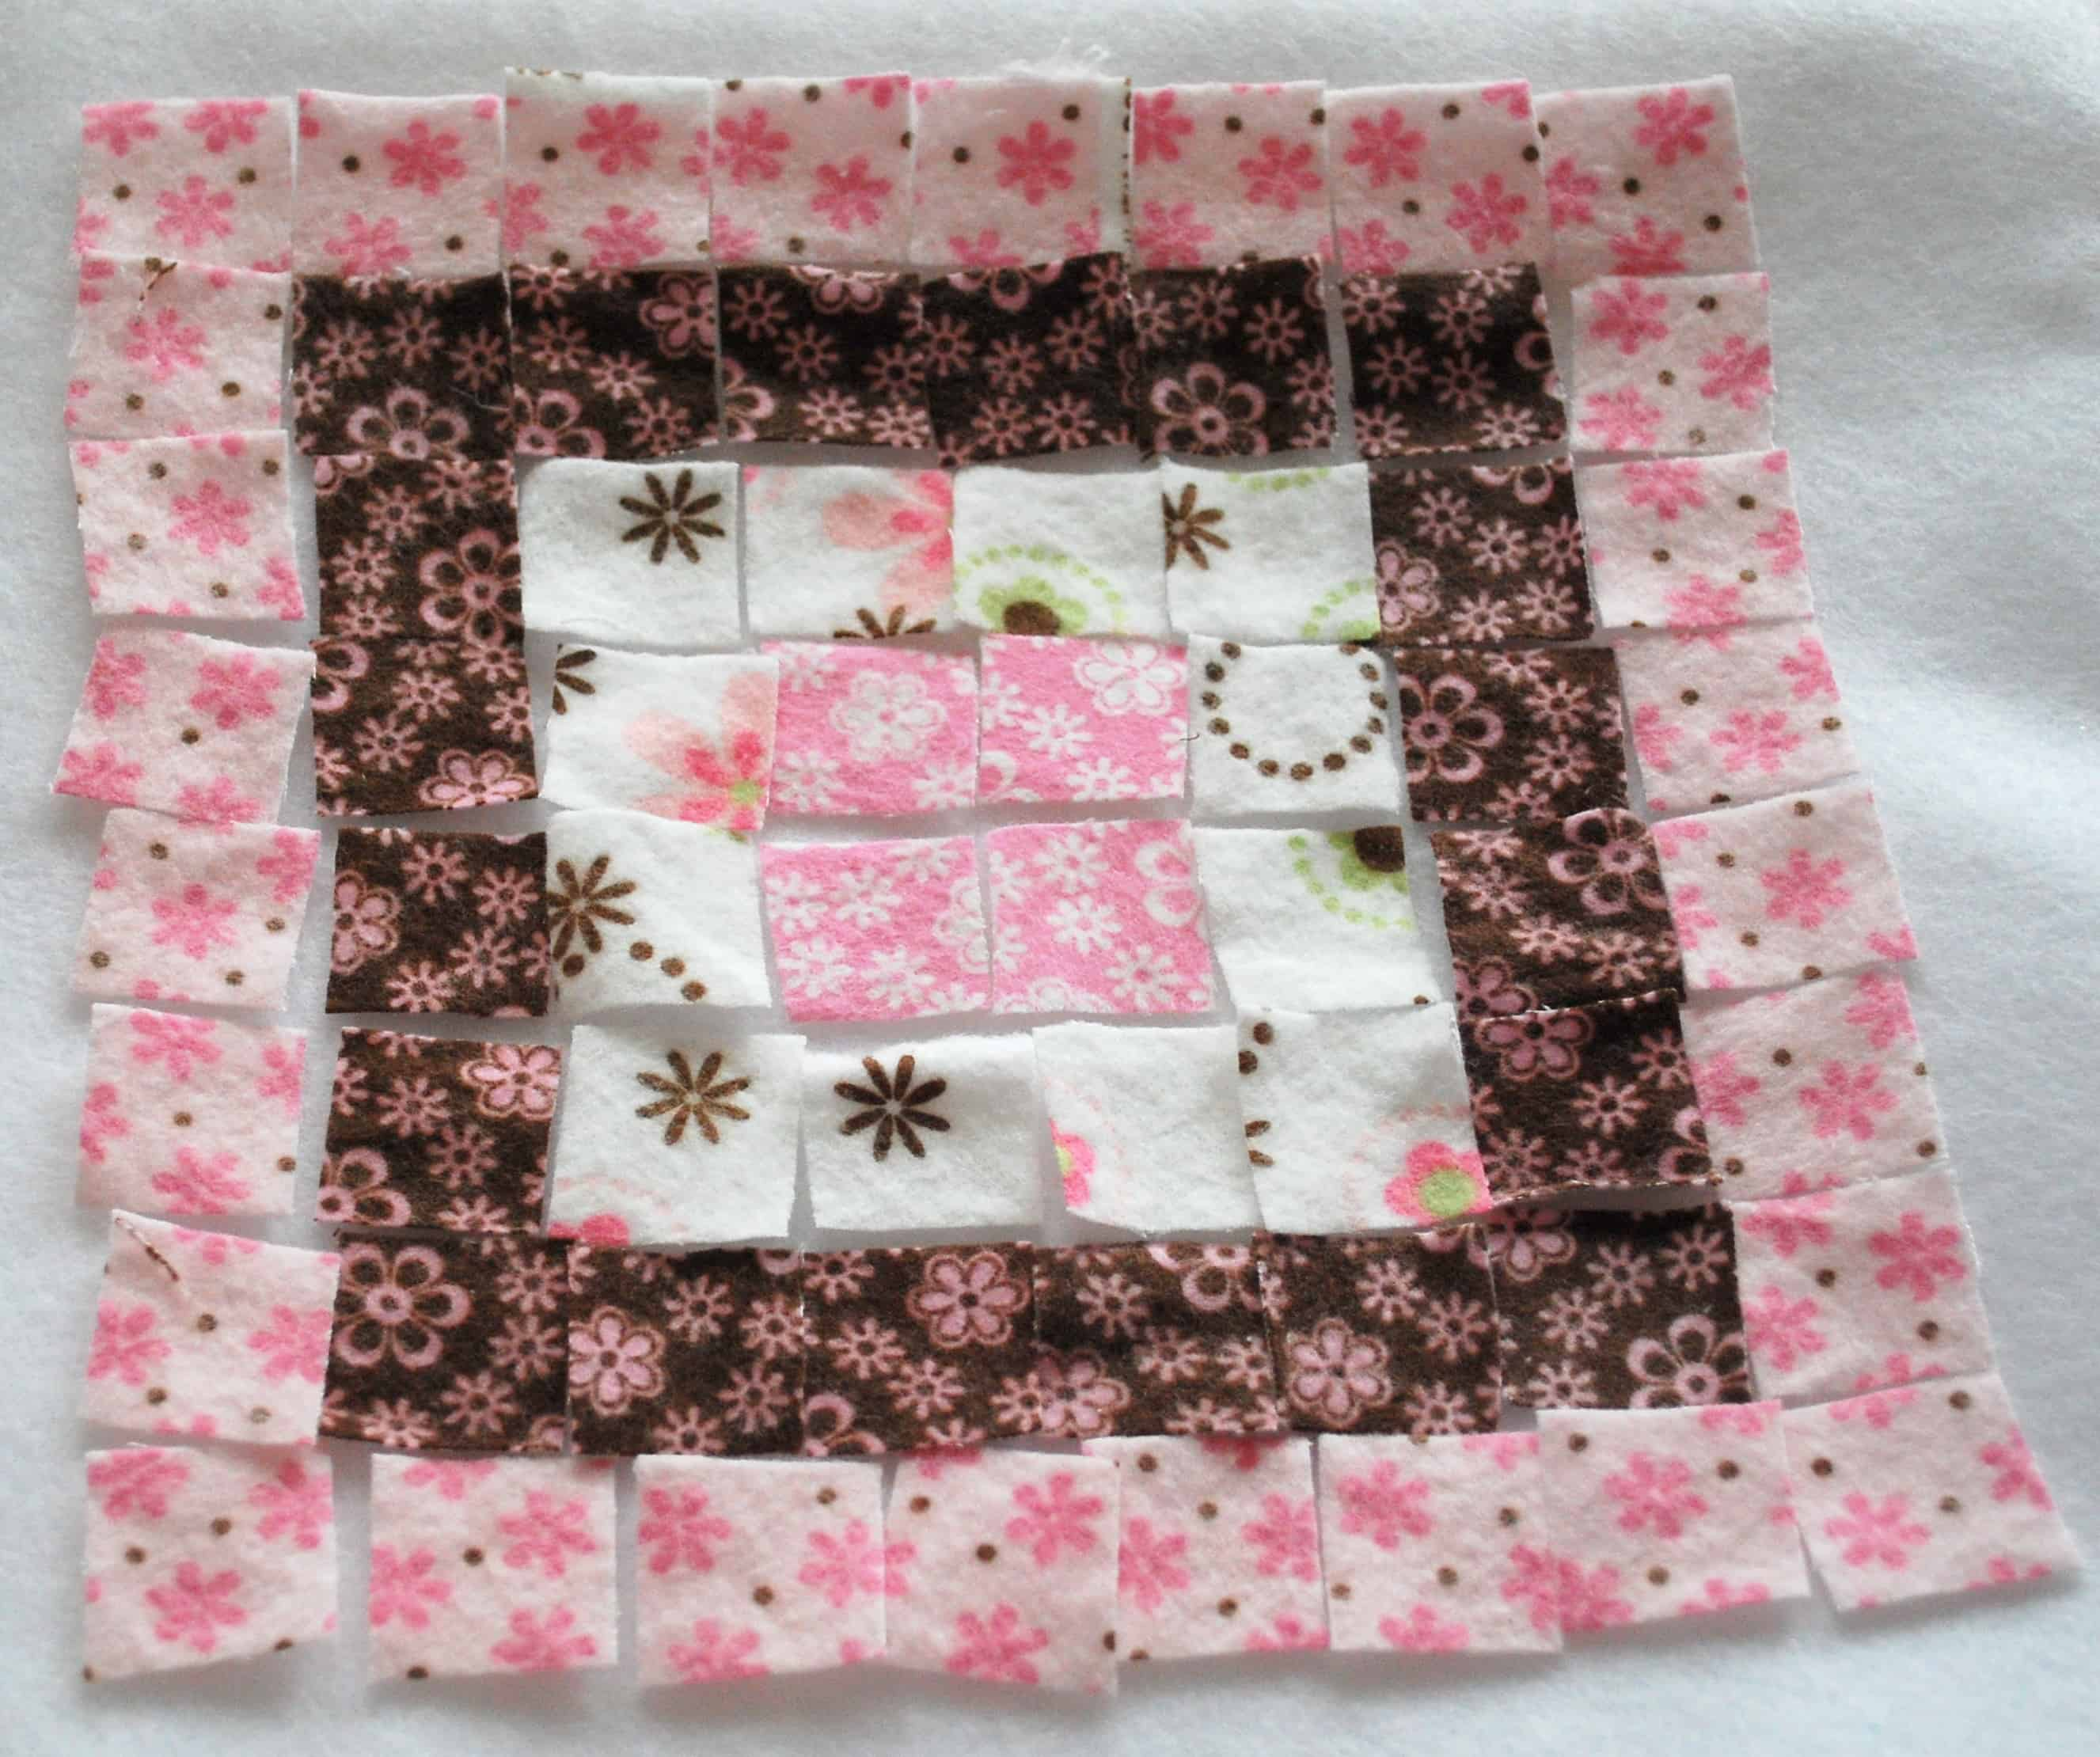 Rag Quilt Patterns For Beginners Free : RAG BABY QUILT PATTERNS Browse Patterns